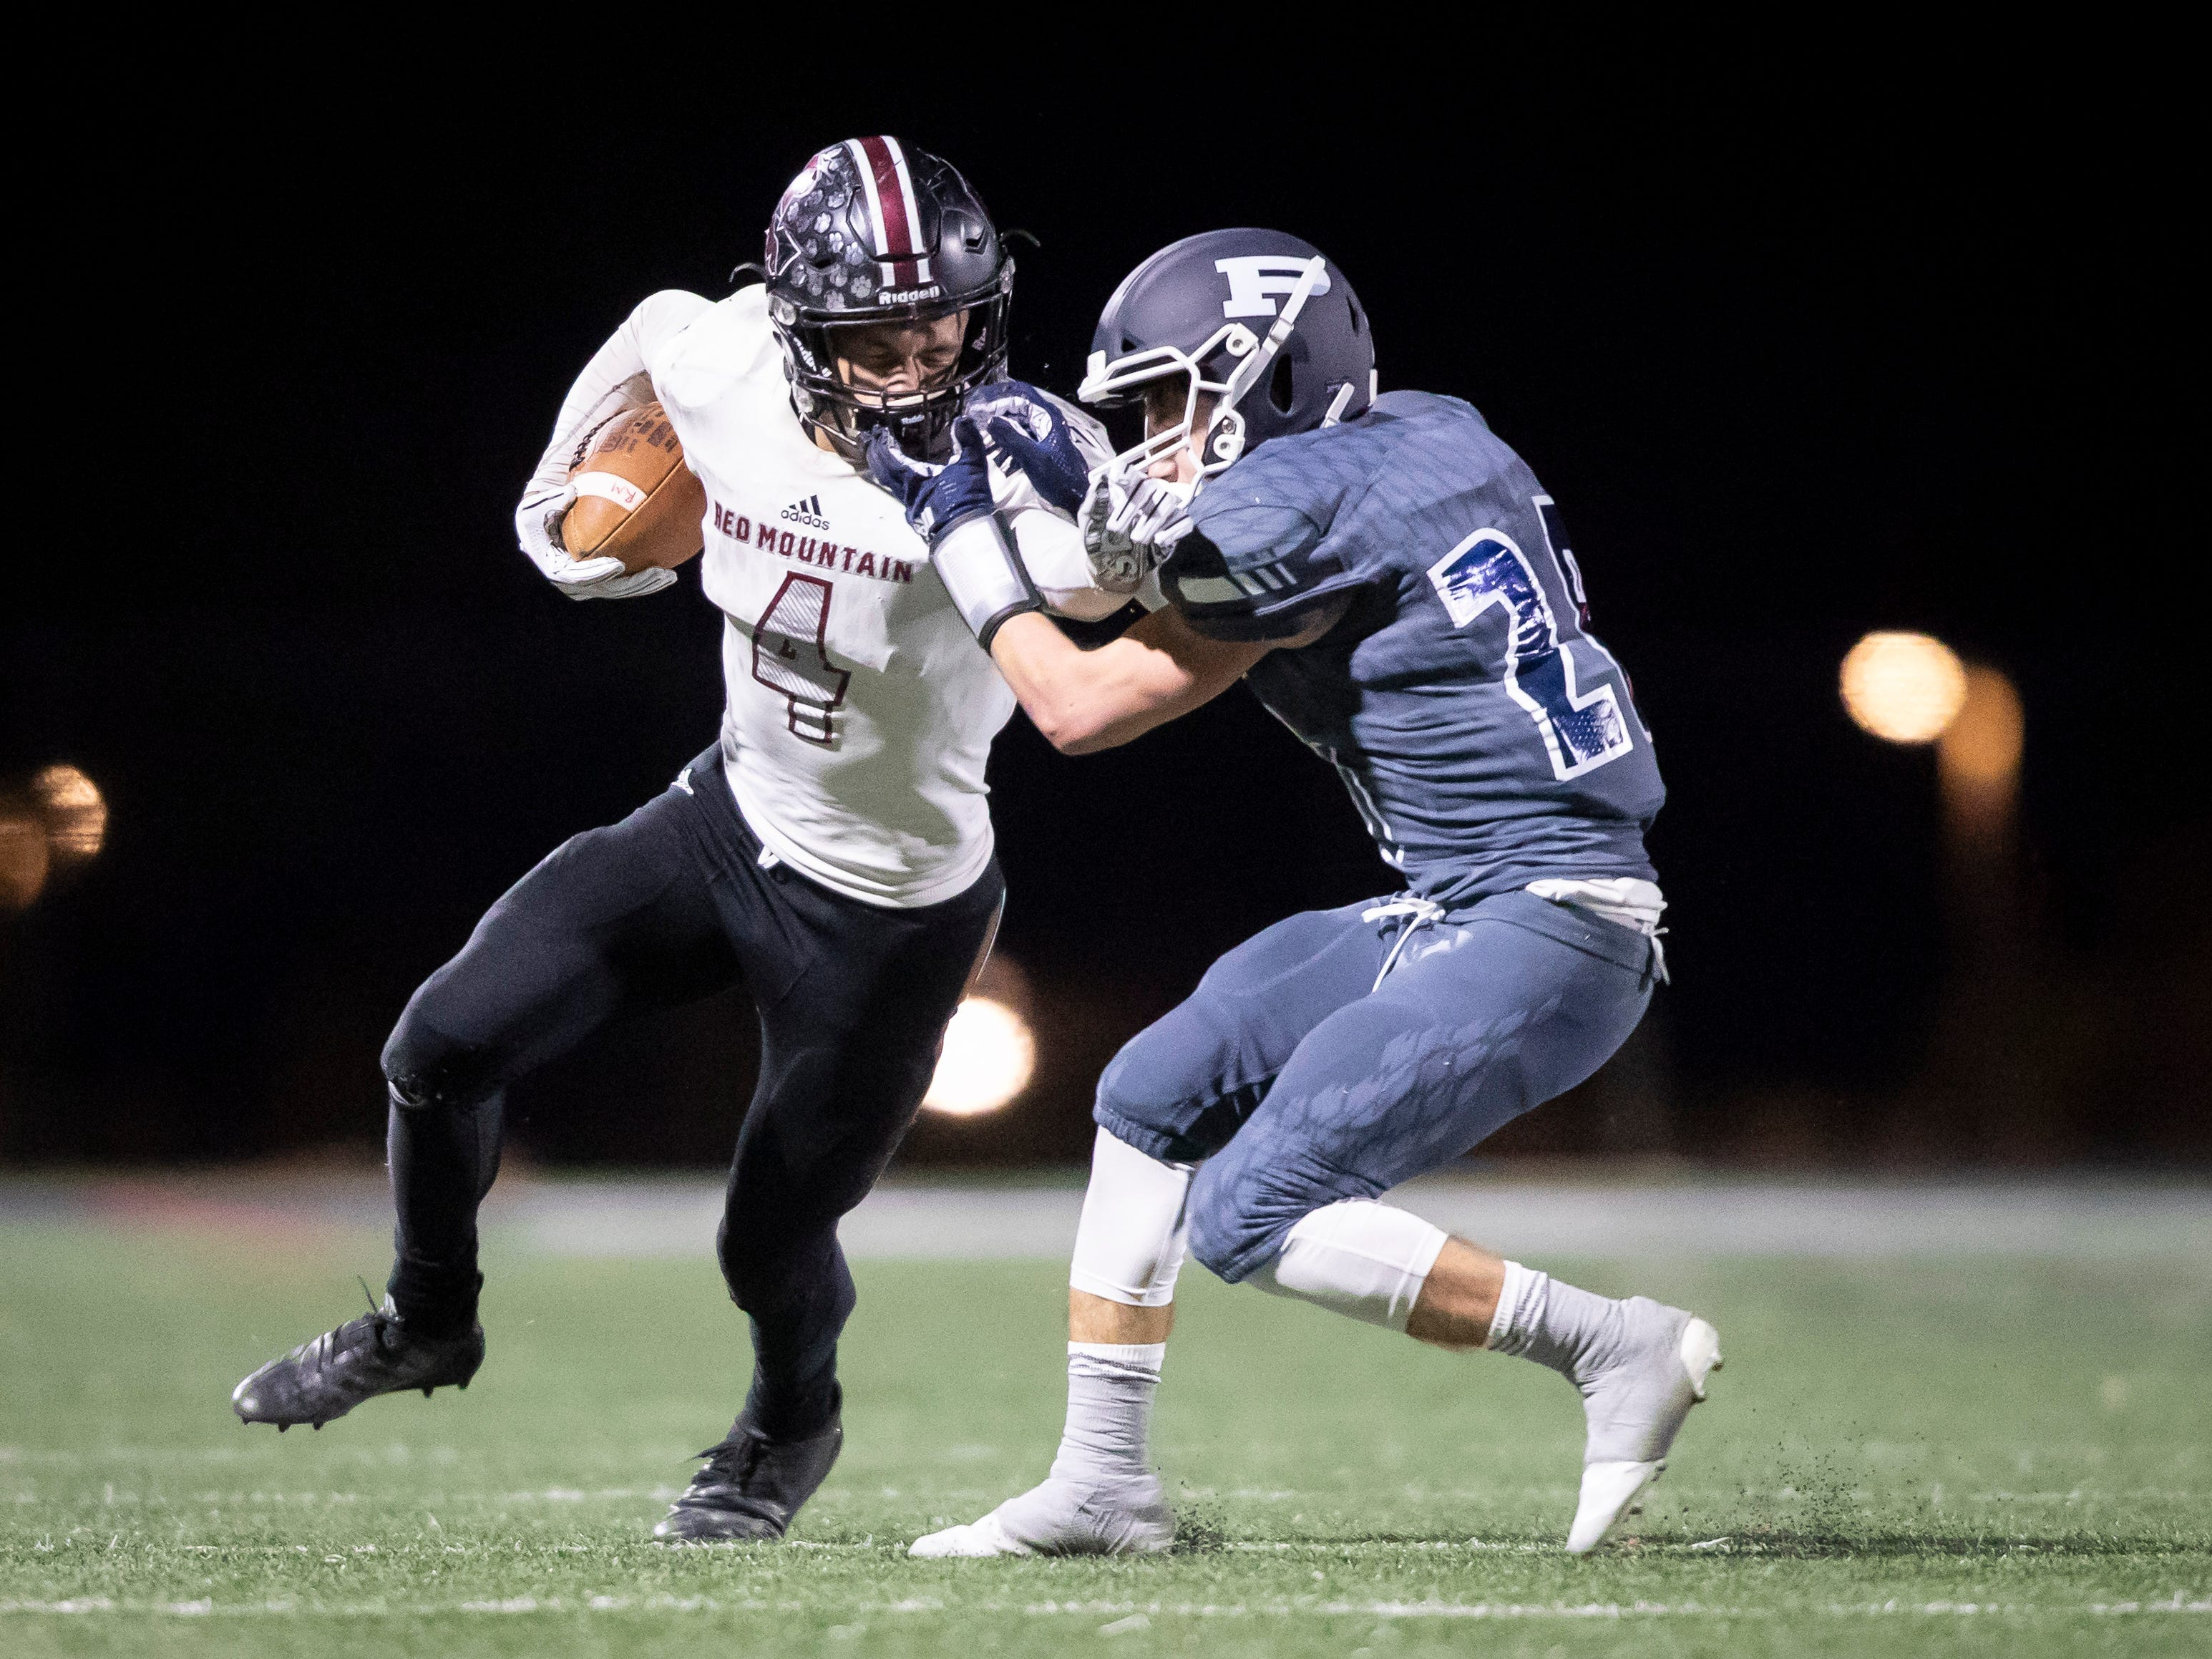 Junior running back Ramses Rivera Ii (4) of the Red Mountain Mountain Lions runs the ball against junior center Jack Havener (28) of the Pinnacle Pioneers during the playoff game at Pinnacle High School on Friday, November 9, 2018 in Phoenix, Arizona. #azhsfb